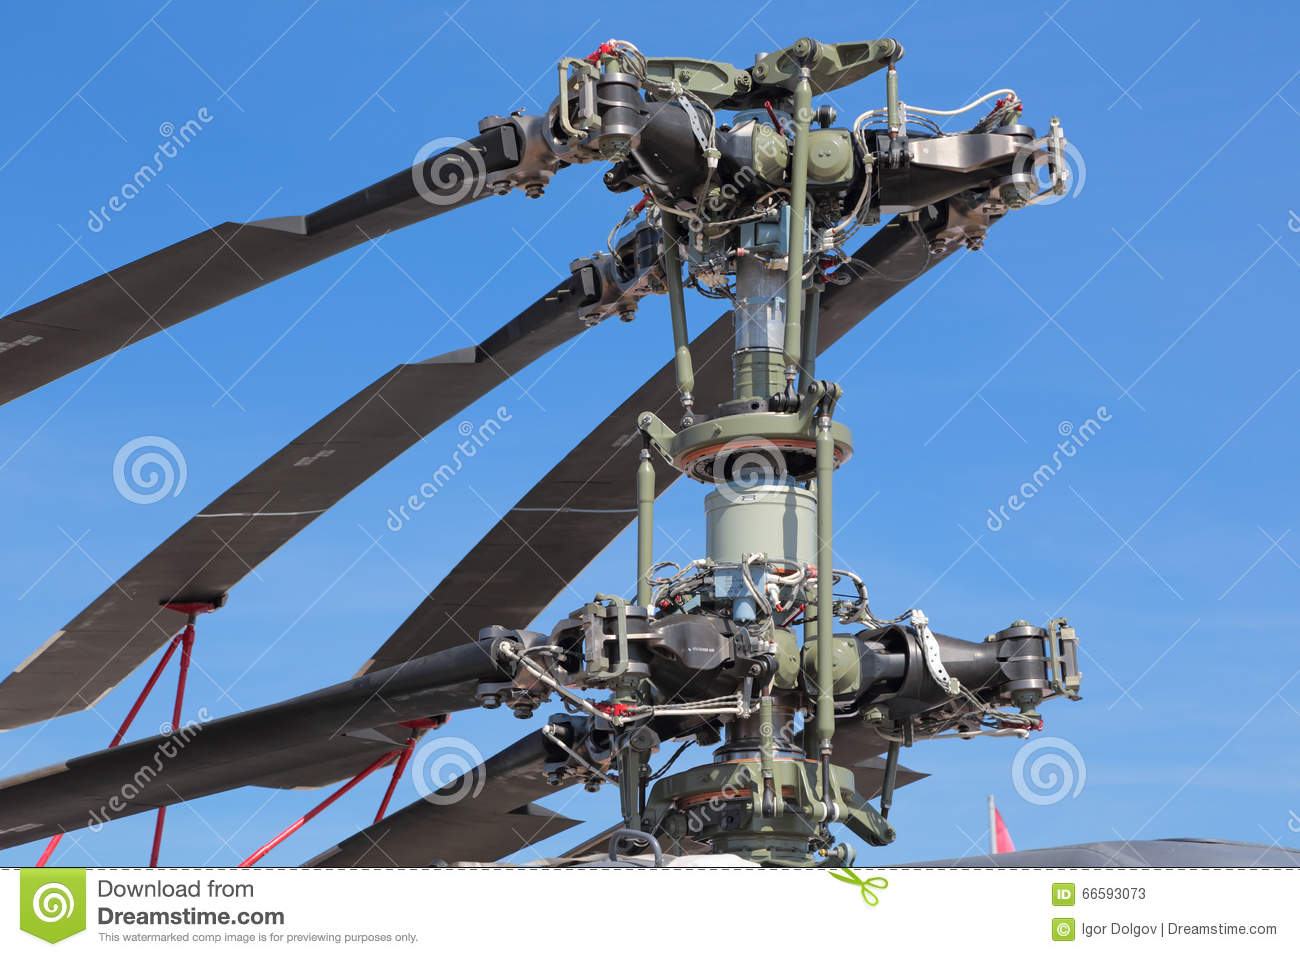 Folding Coaxial Blades Of The Helicopter Editorial Stock Photo.